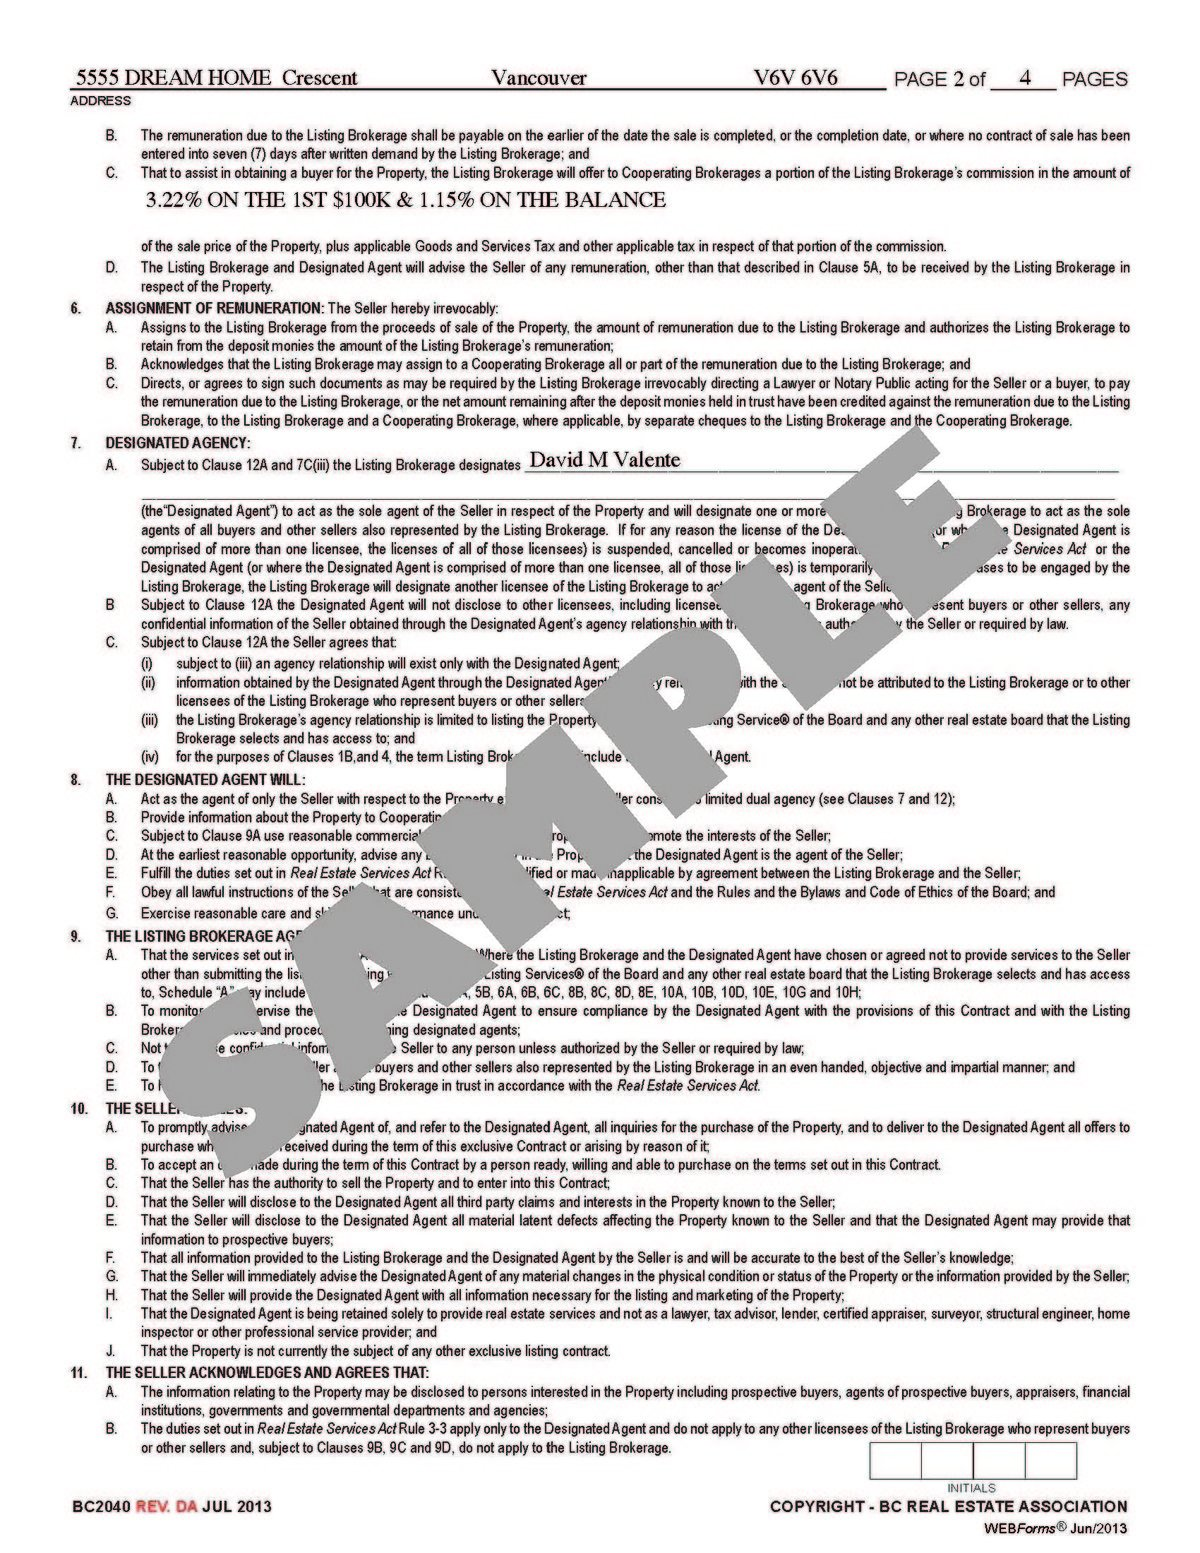 MLS-multiple_listing_contract SAMPLE_Page_2.jpg